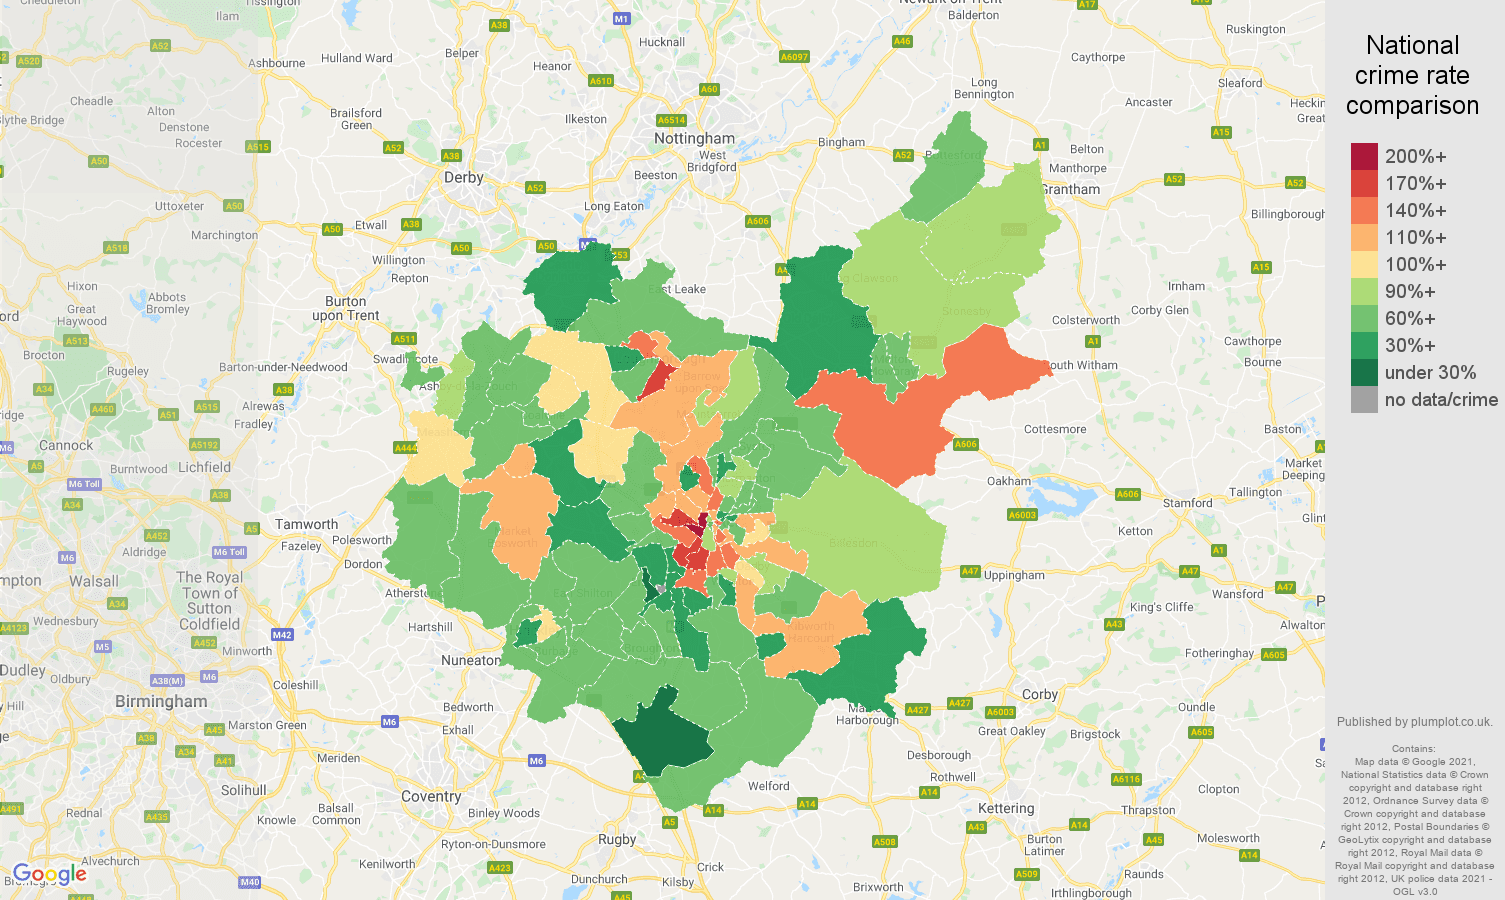 Leicestershire burglary crime rate comparison map